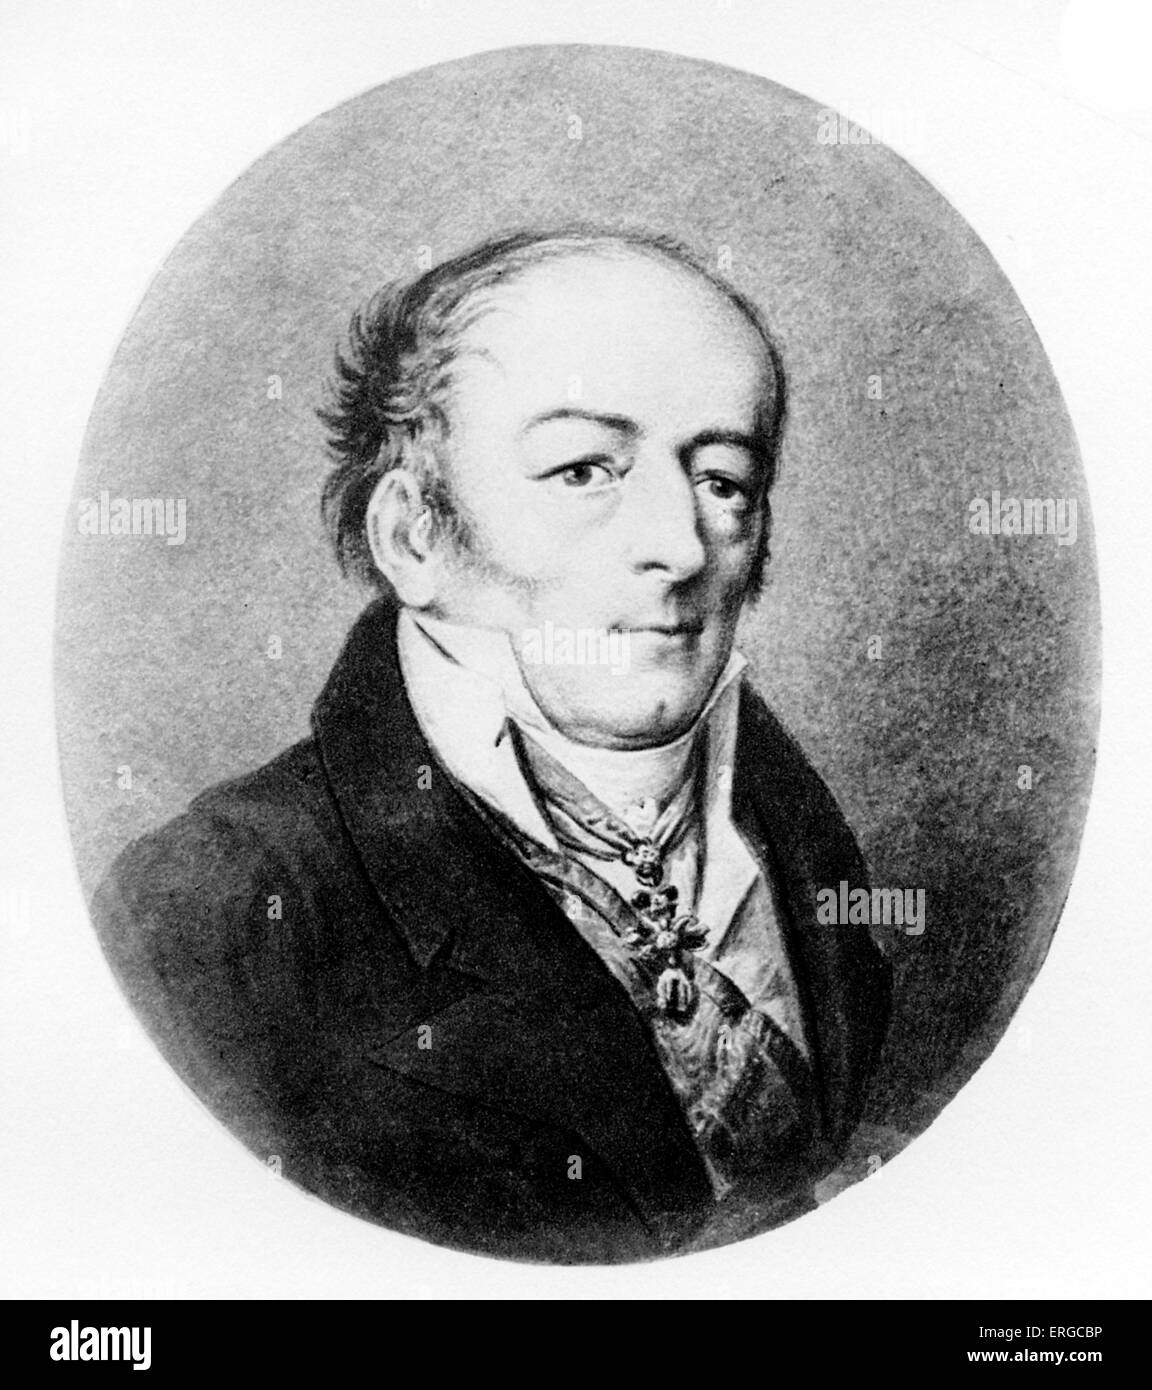 Johann Philipp Count von Stadion (1763 – 1824) after the portrait by Perger. - Stock Image